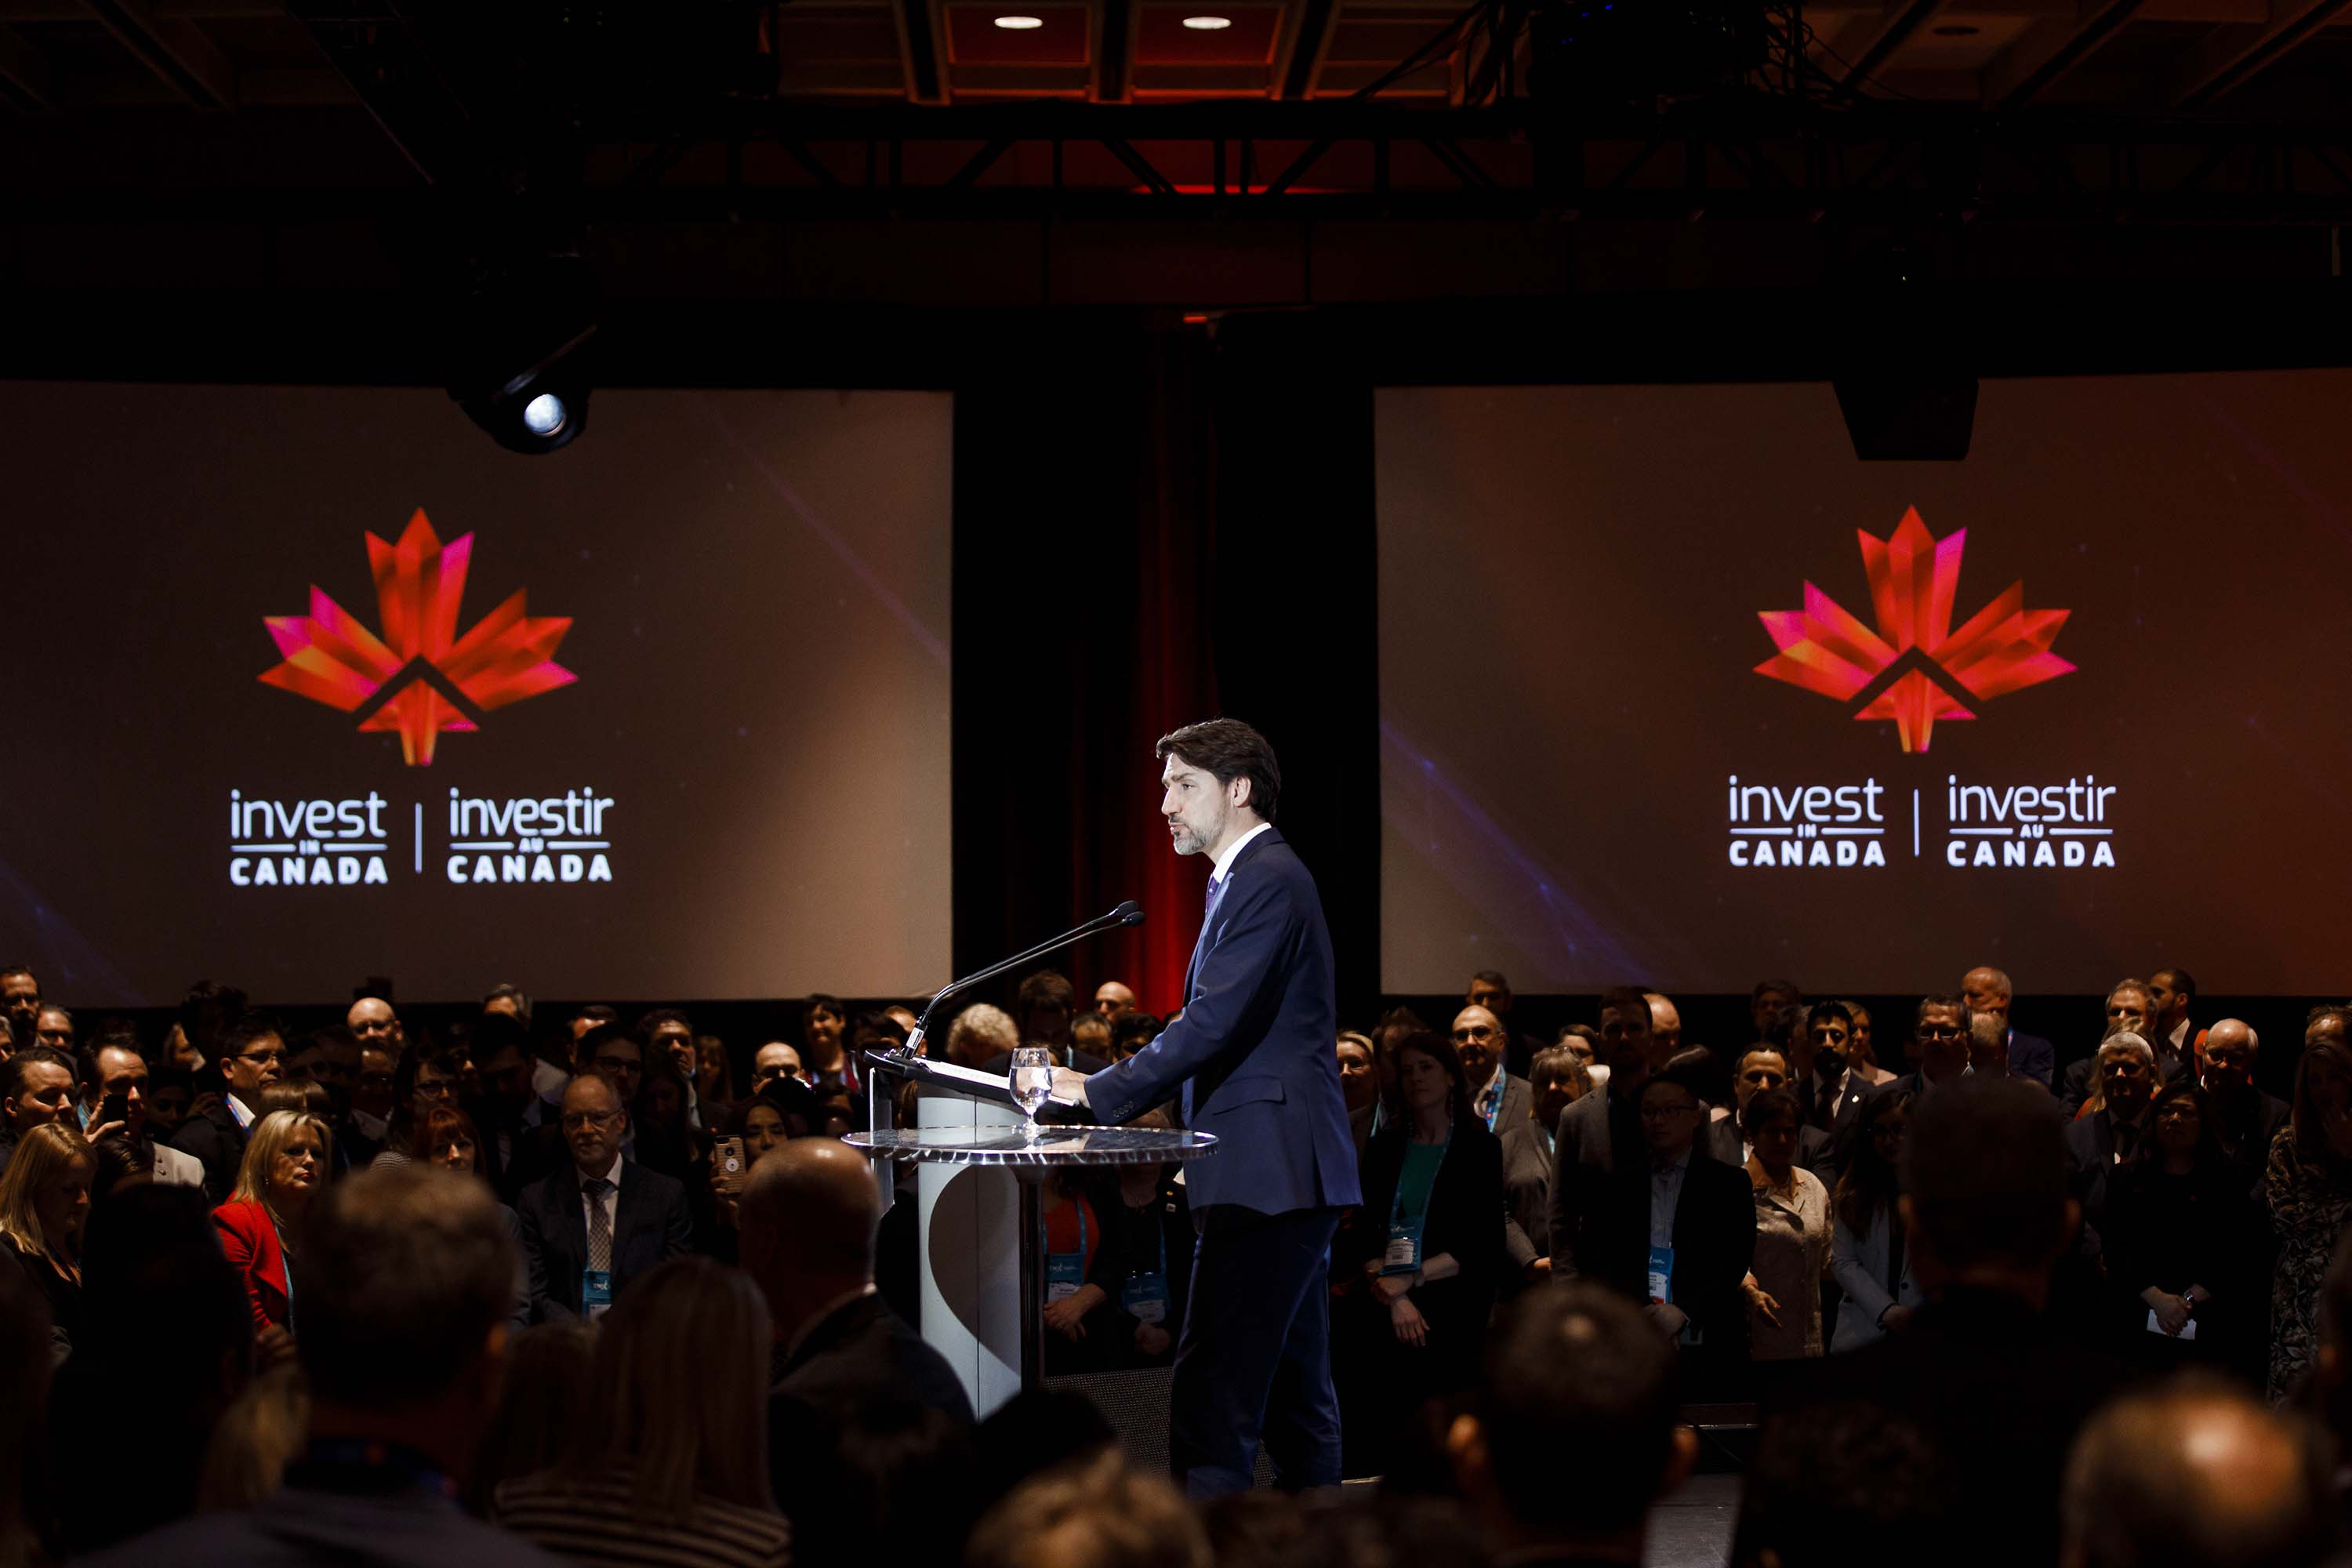 Justin Trudeau, Canada's prime minister, speaks during the Prospectors & Developers Association of Canada (PDAC) conference in Toronto, Canada, on March 2.